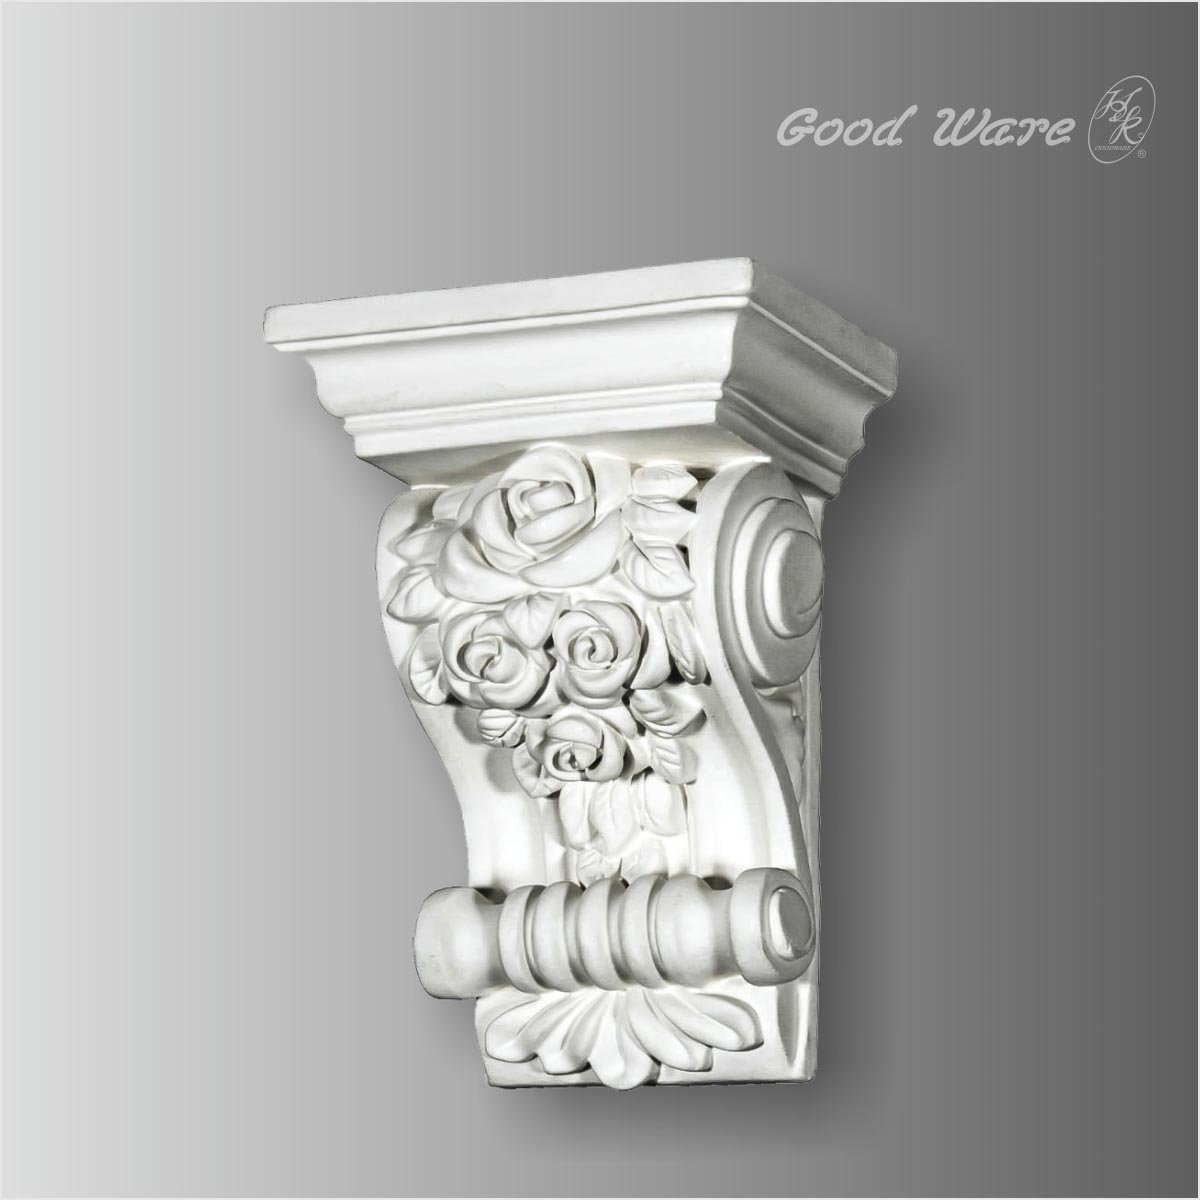 Polyurethane decorative corbels for granite countertops